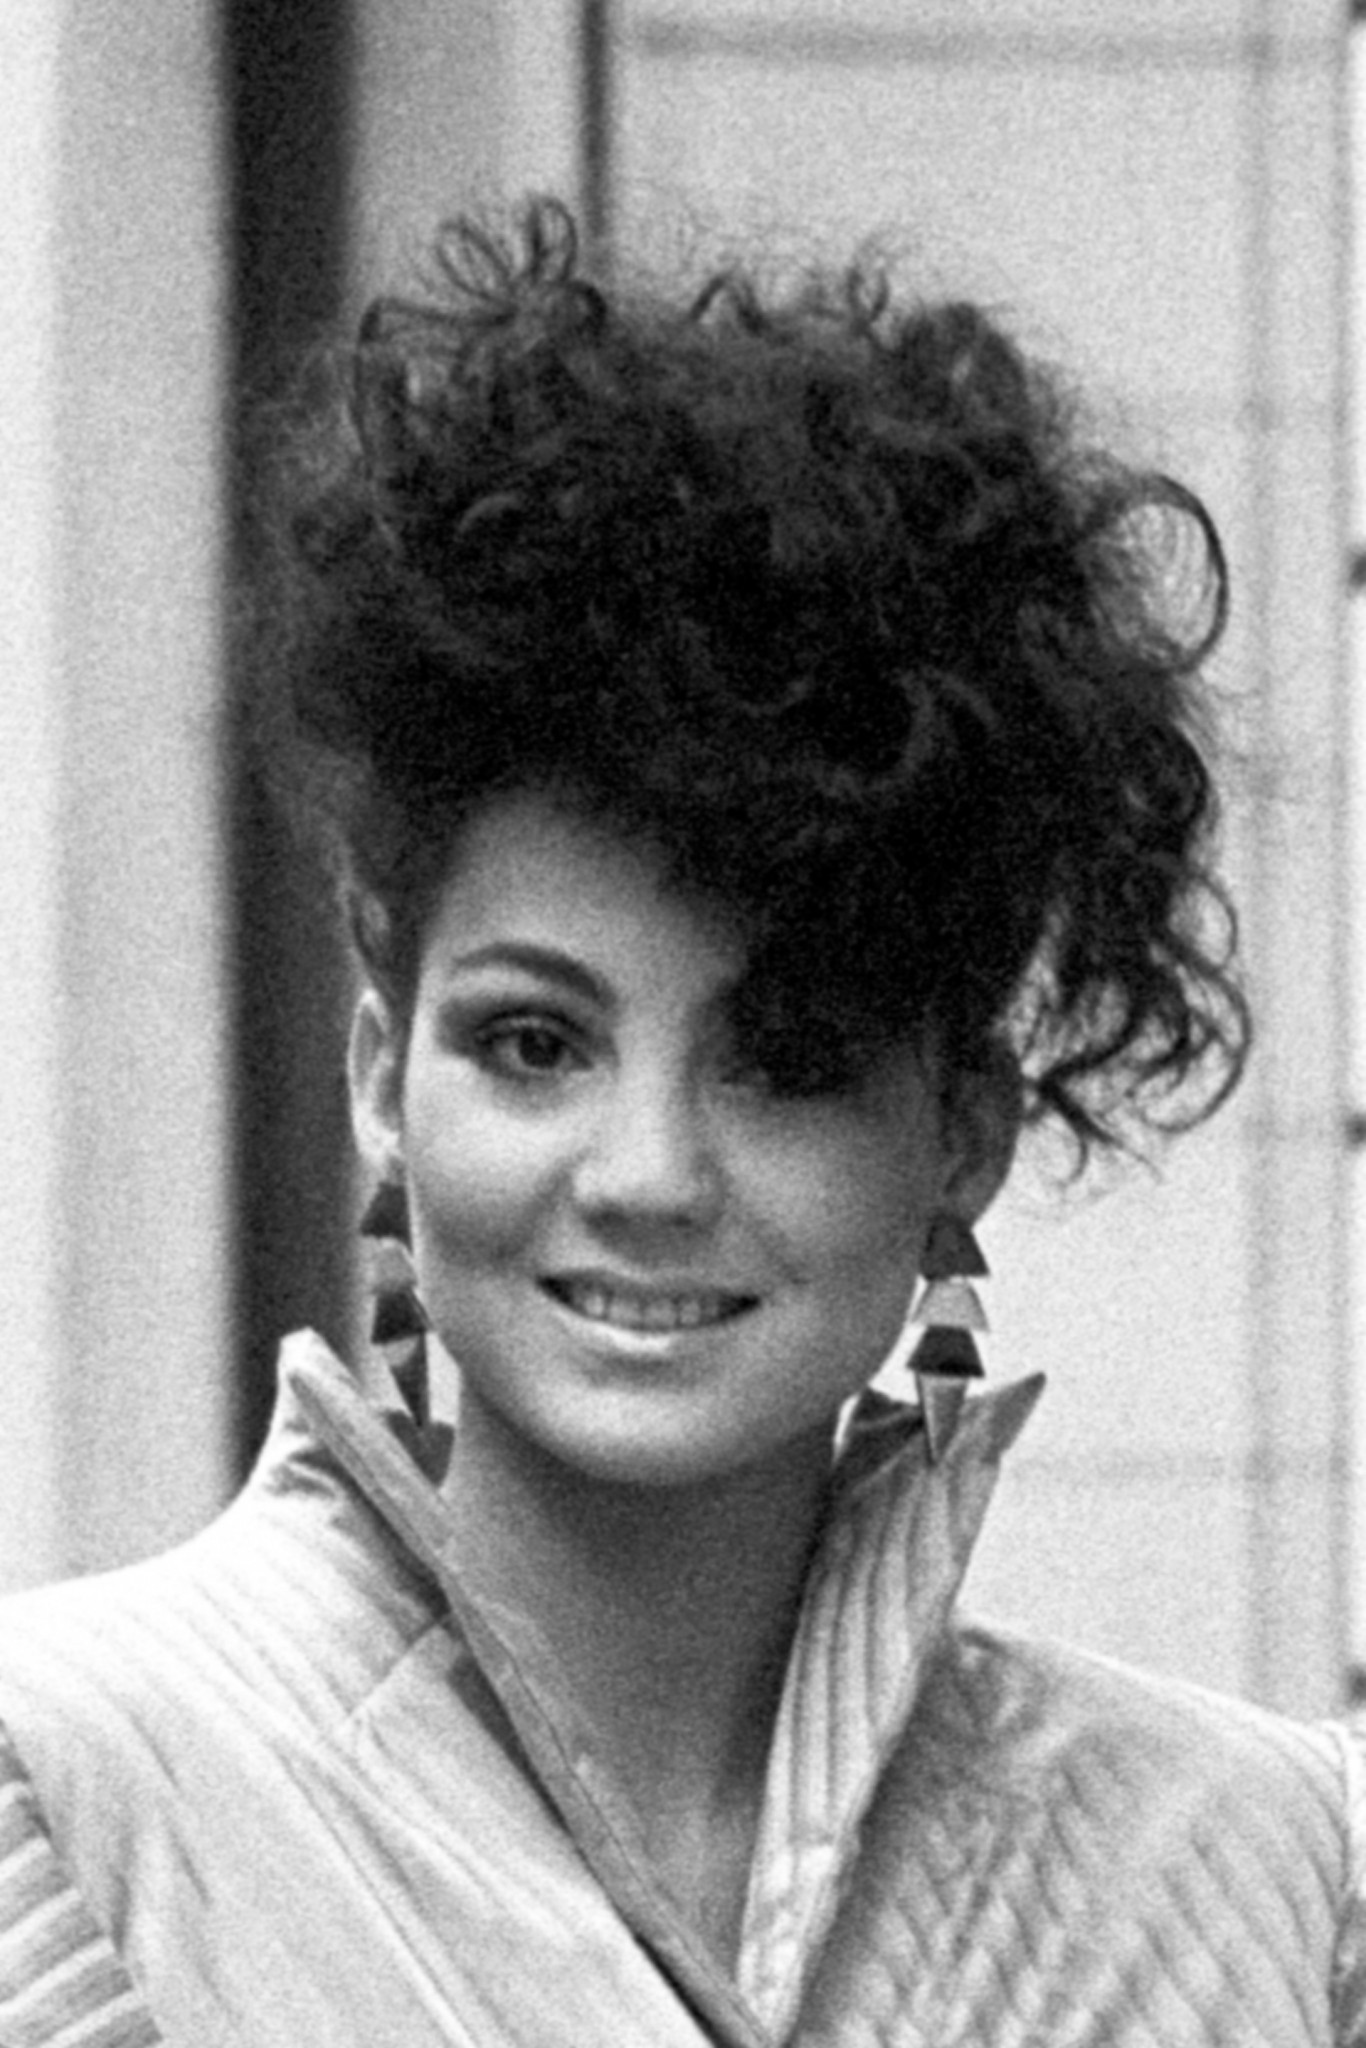 Best ideas about 1980S Black Hairstyles . Save or Pin 23 photos that make us glad 1980s hairstyles are no longer Now.